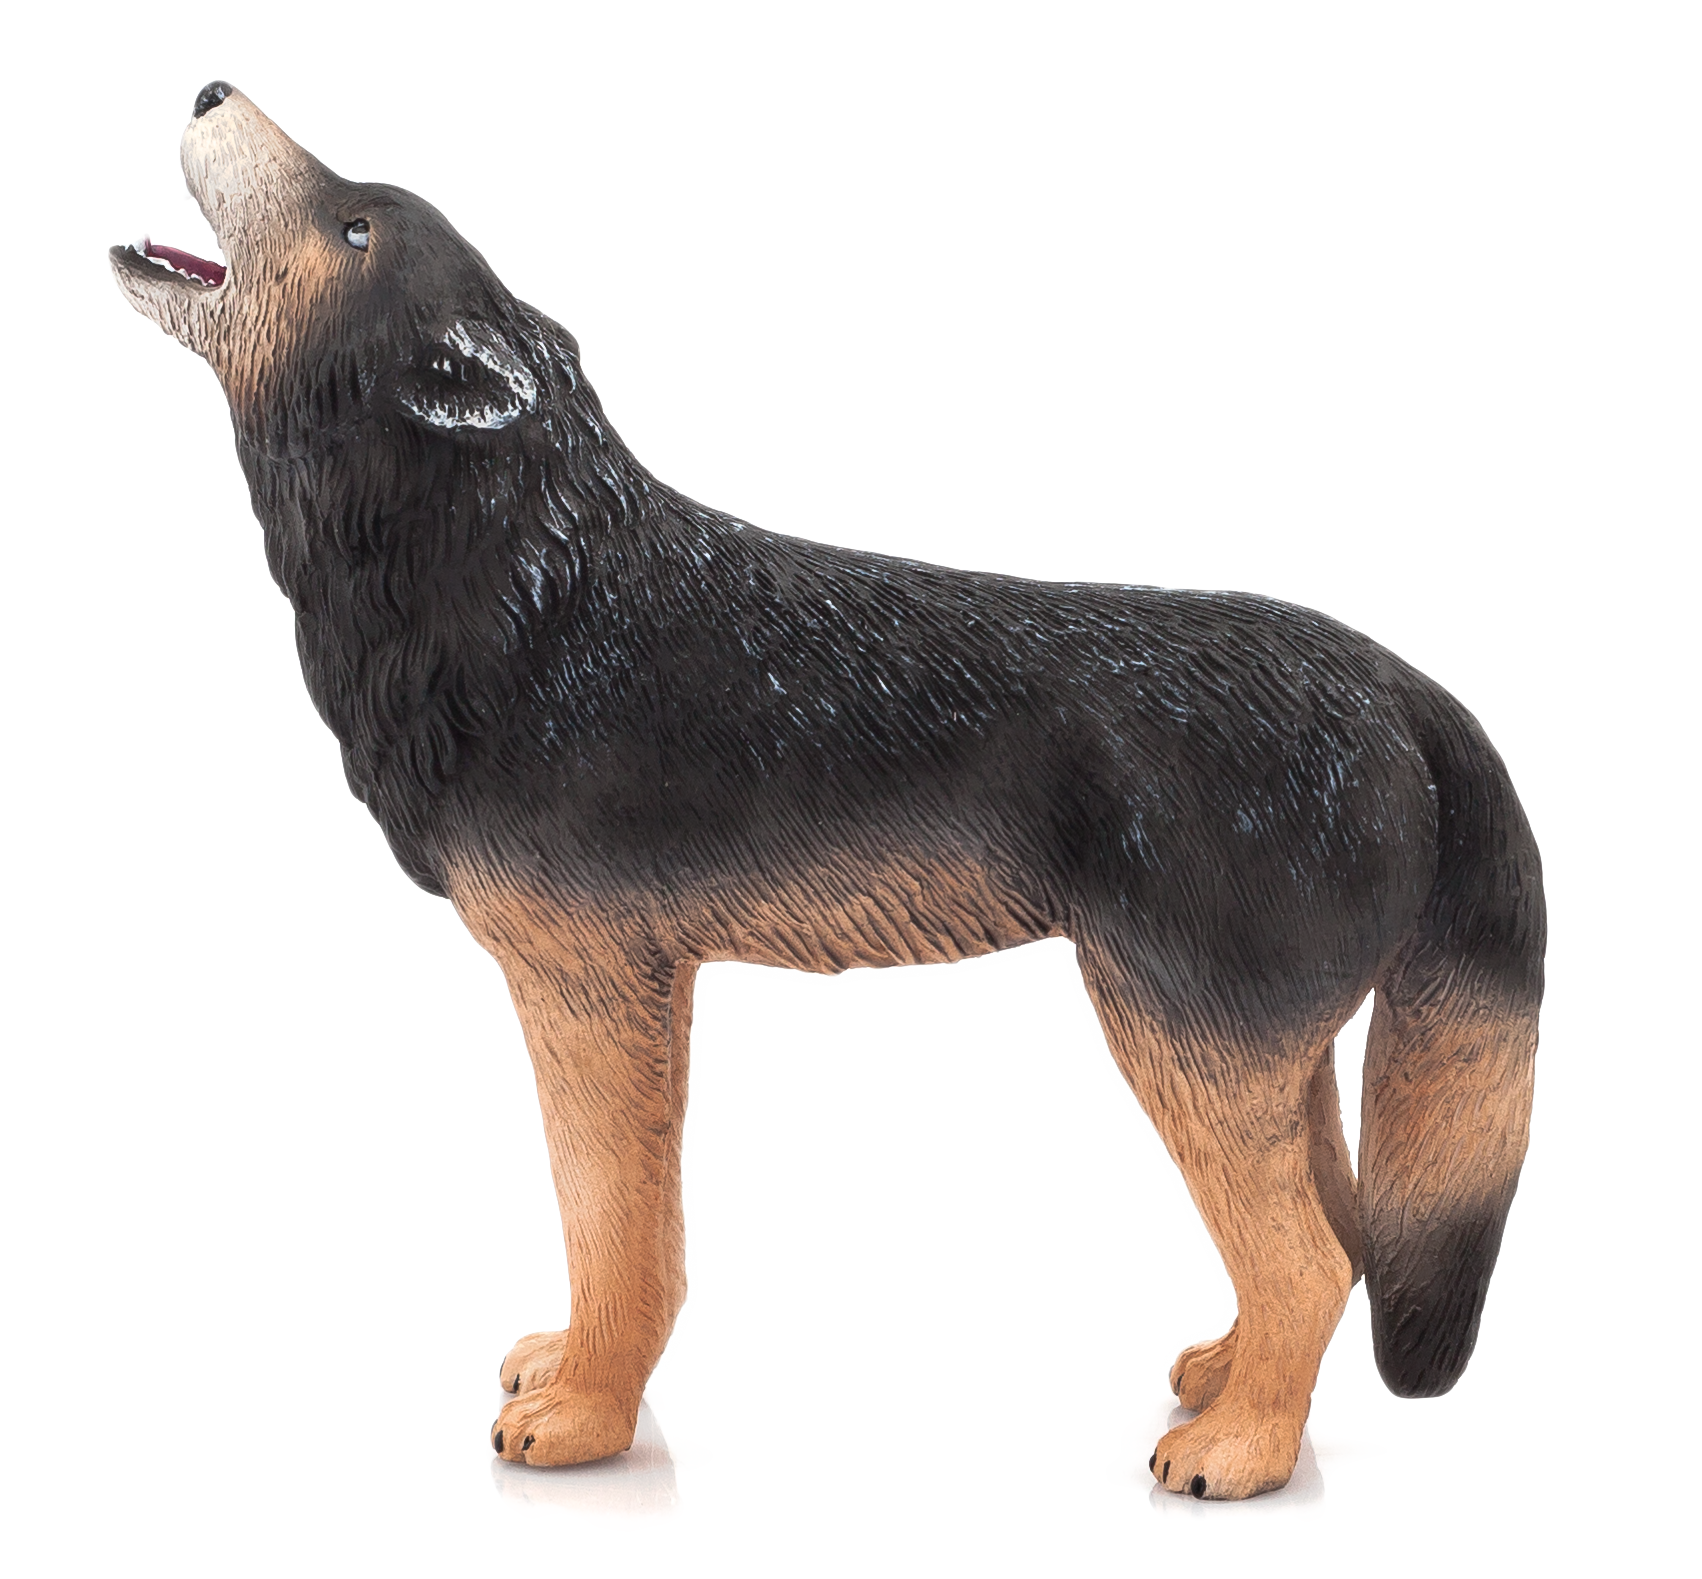 Dog Howling Png - Dog Howling PNG Transparent Dog Howling.PNG Images.   PlusPNG